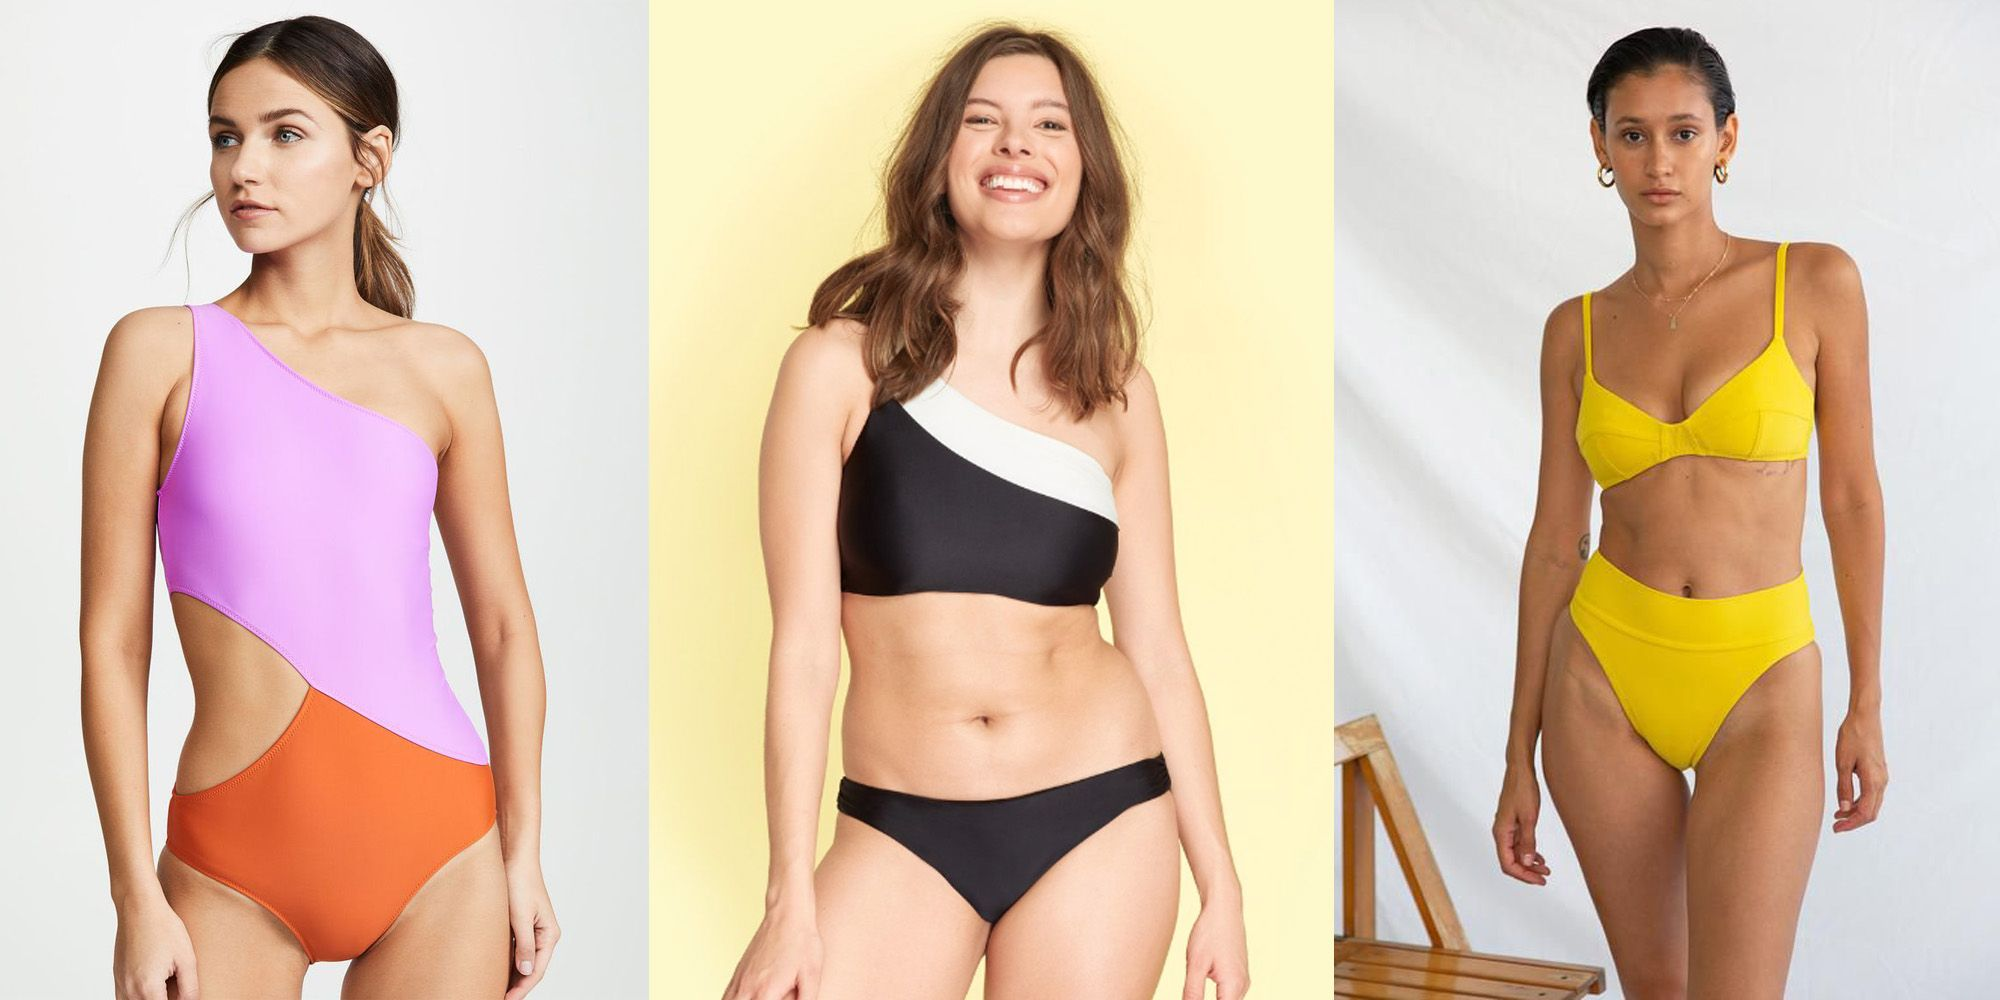 a34be8f4c9 27 New Swimwear Brands - Best Bathing Suit Designers of 2019